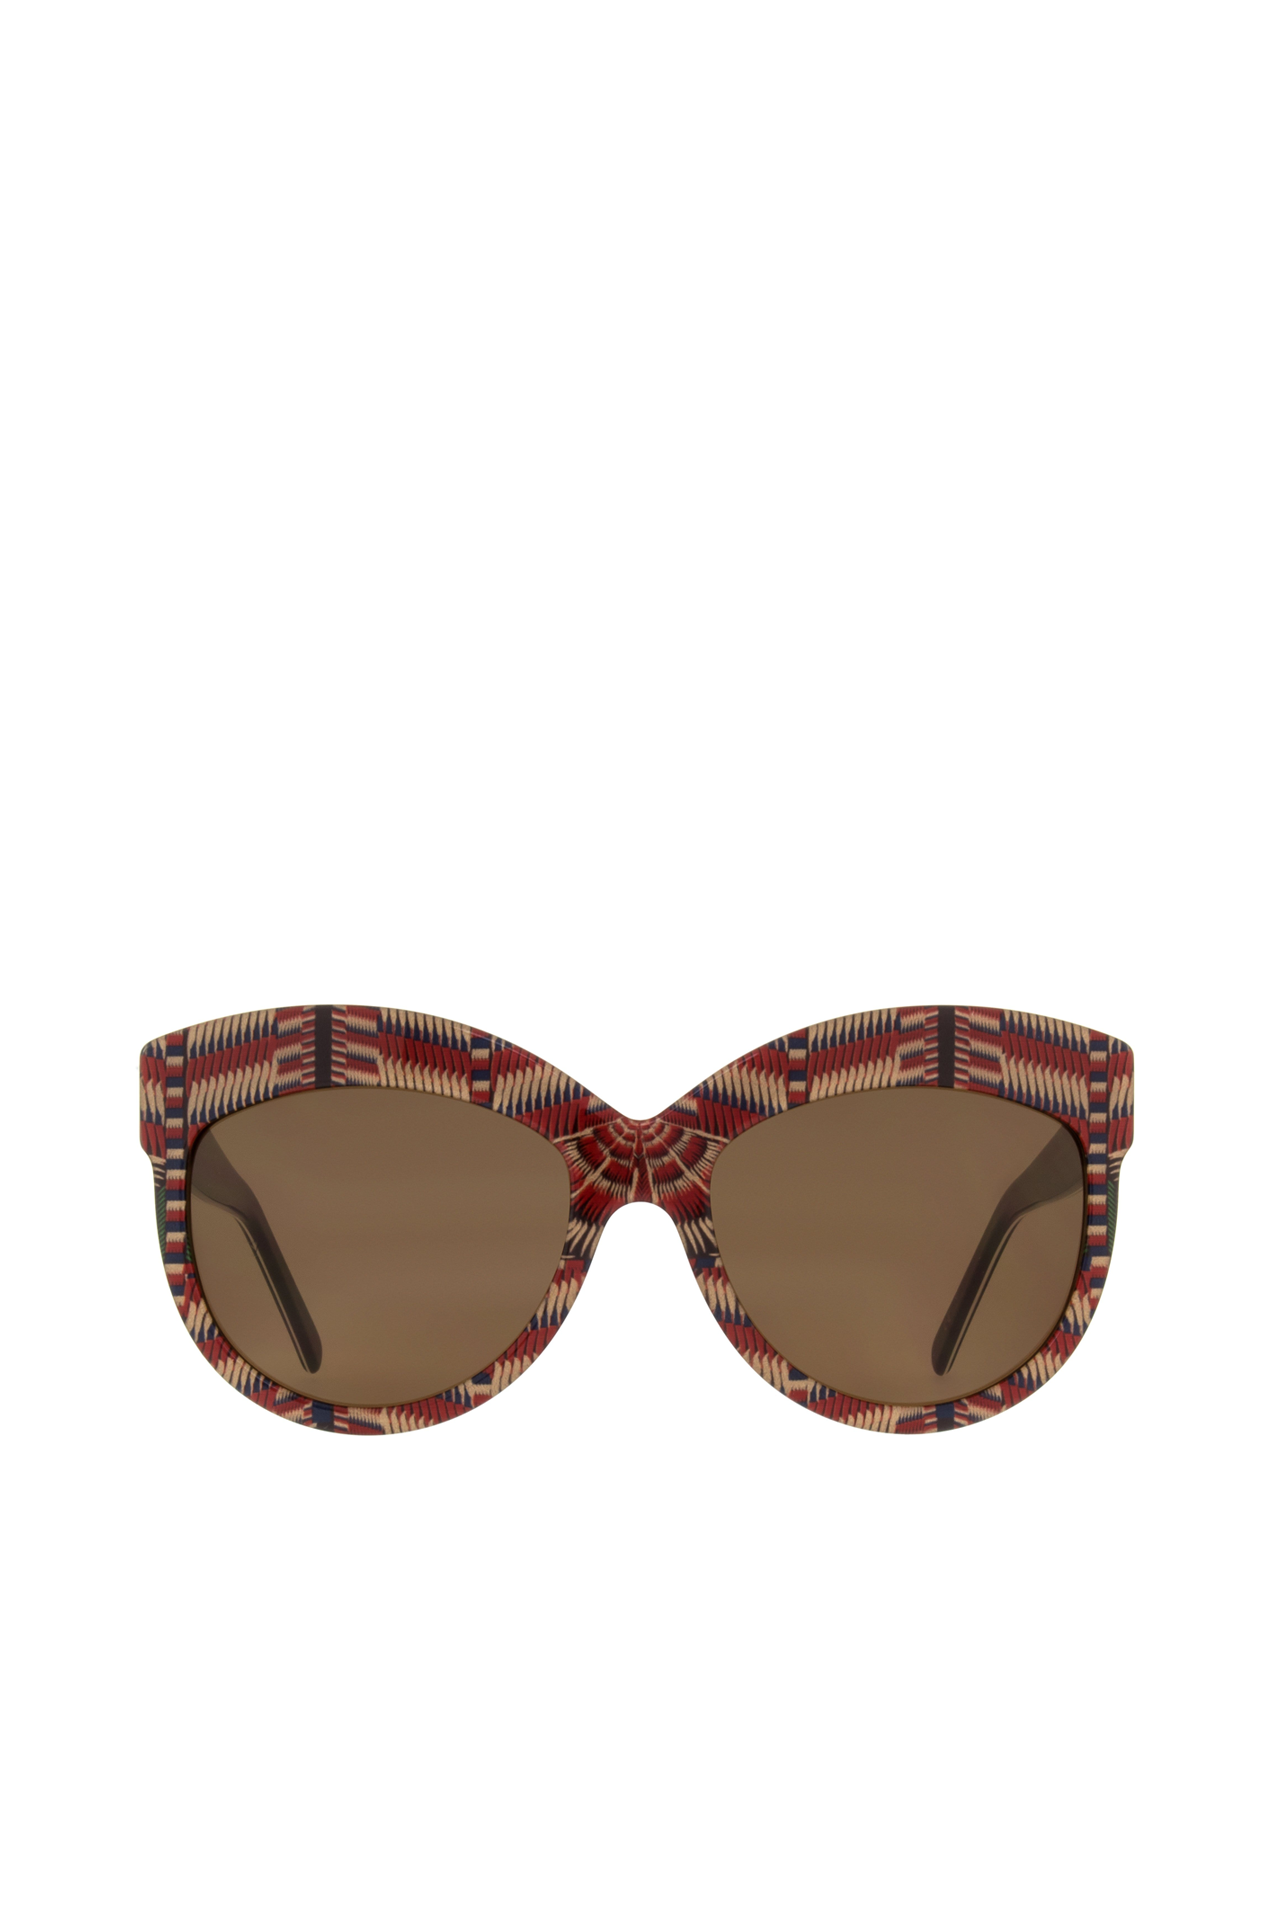 Sunglasses Bahia - Cancan Red